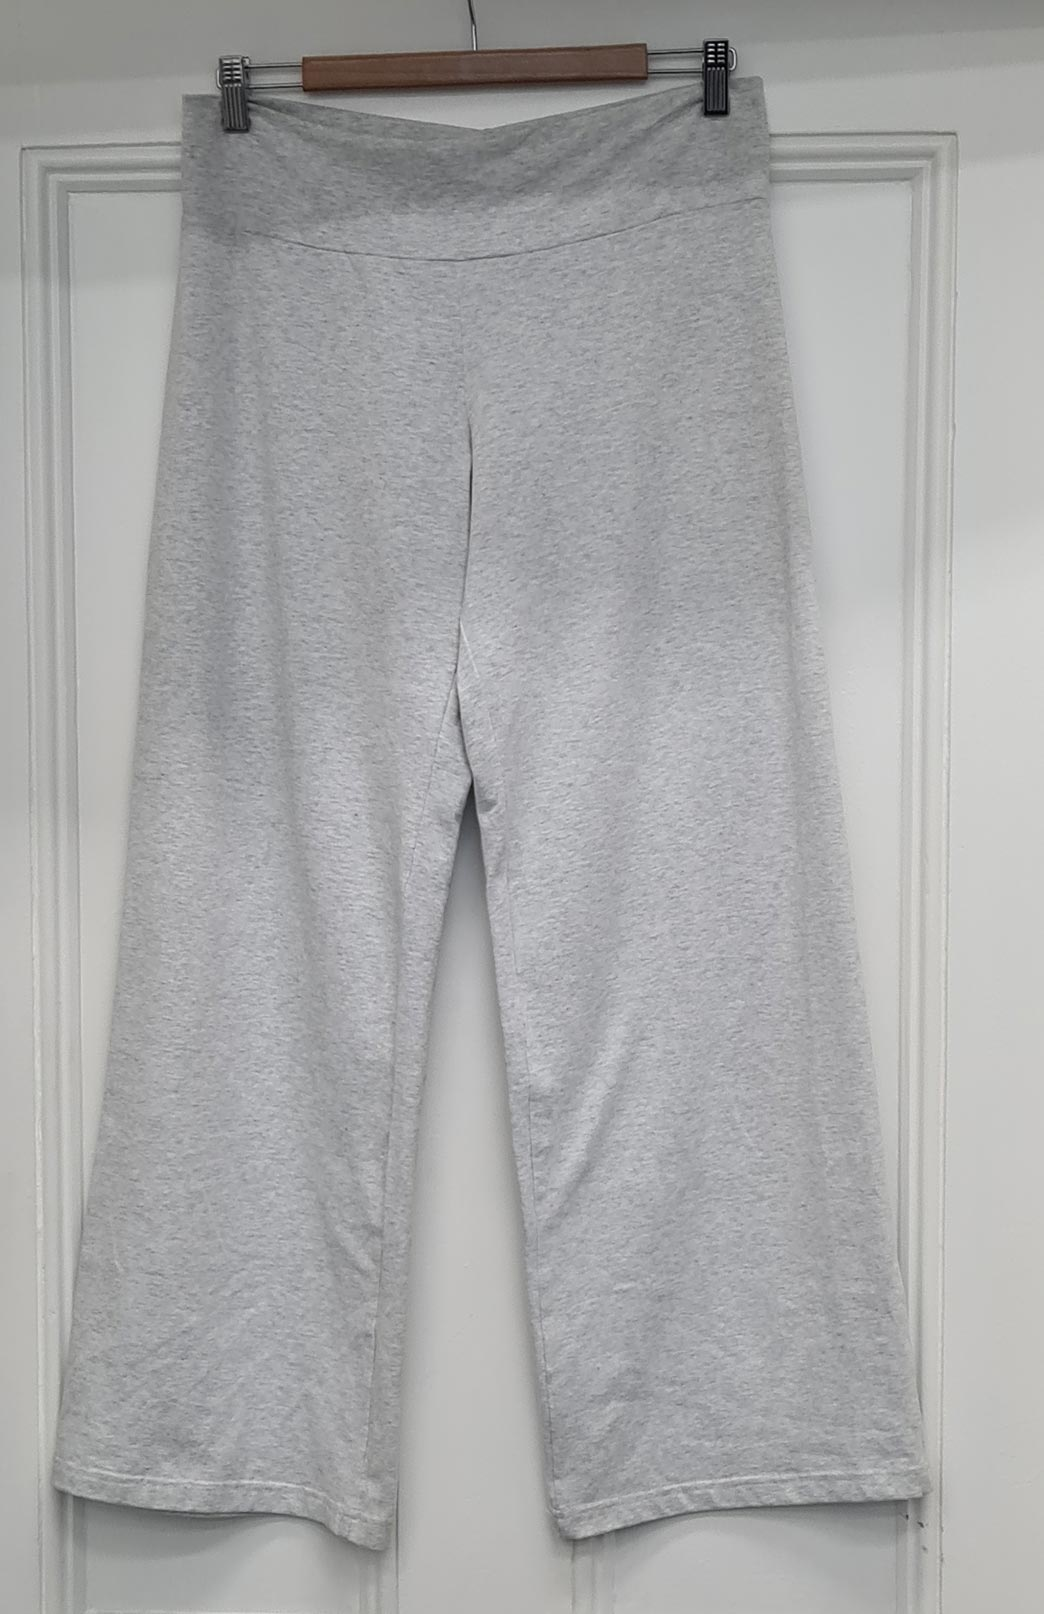 Yoga Pants - Organic Cotton (Sample)